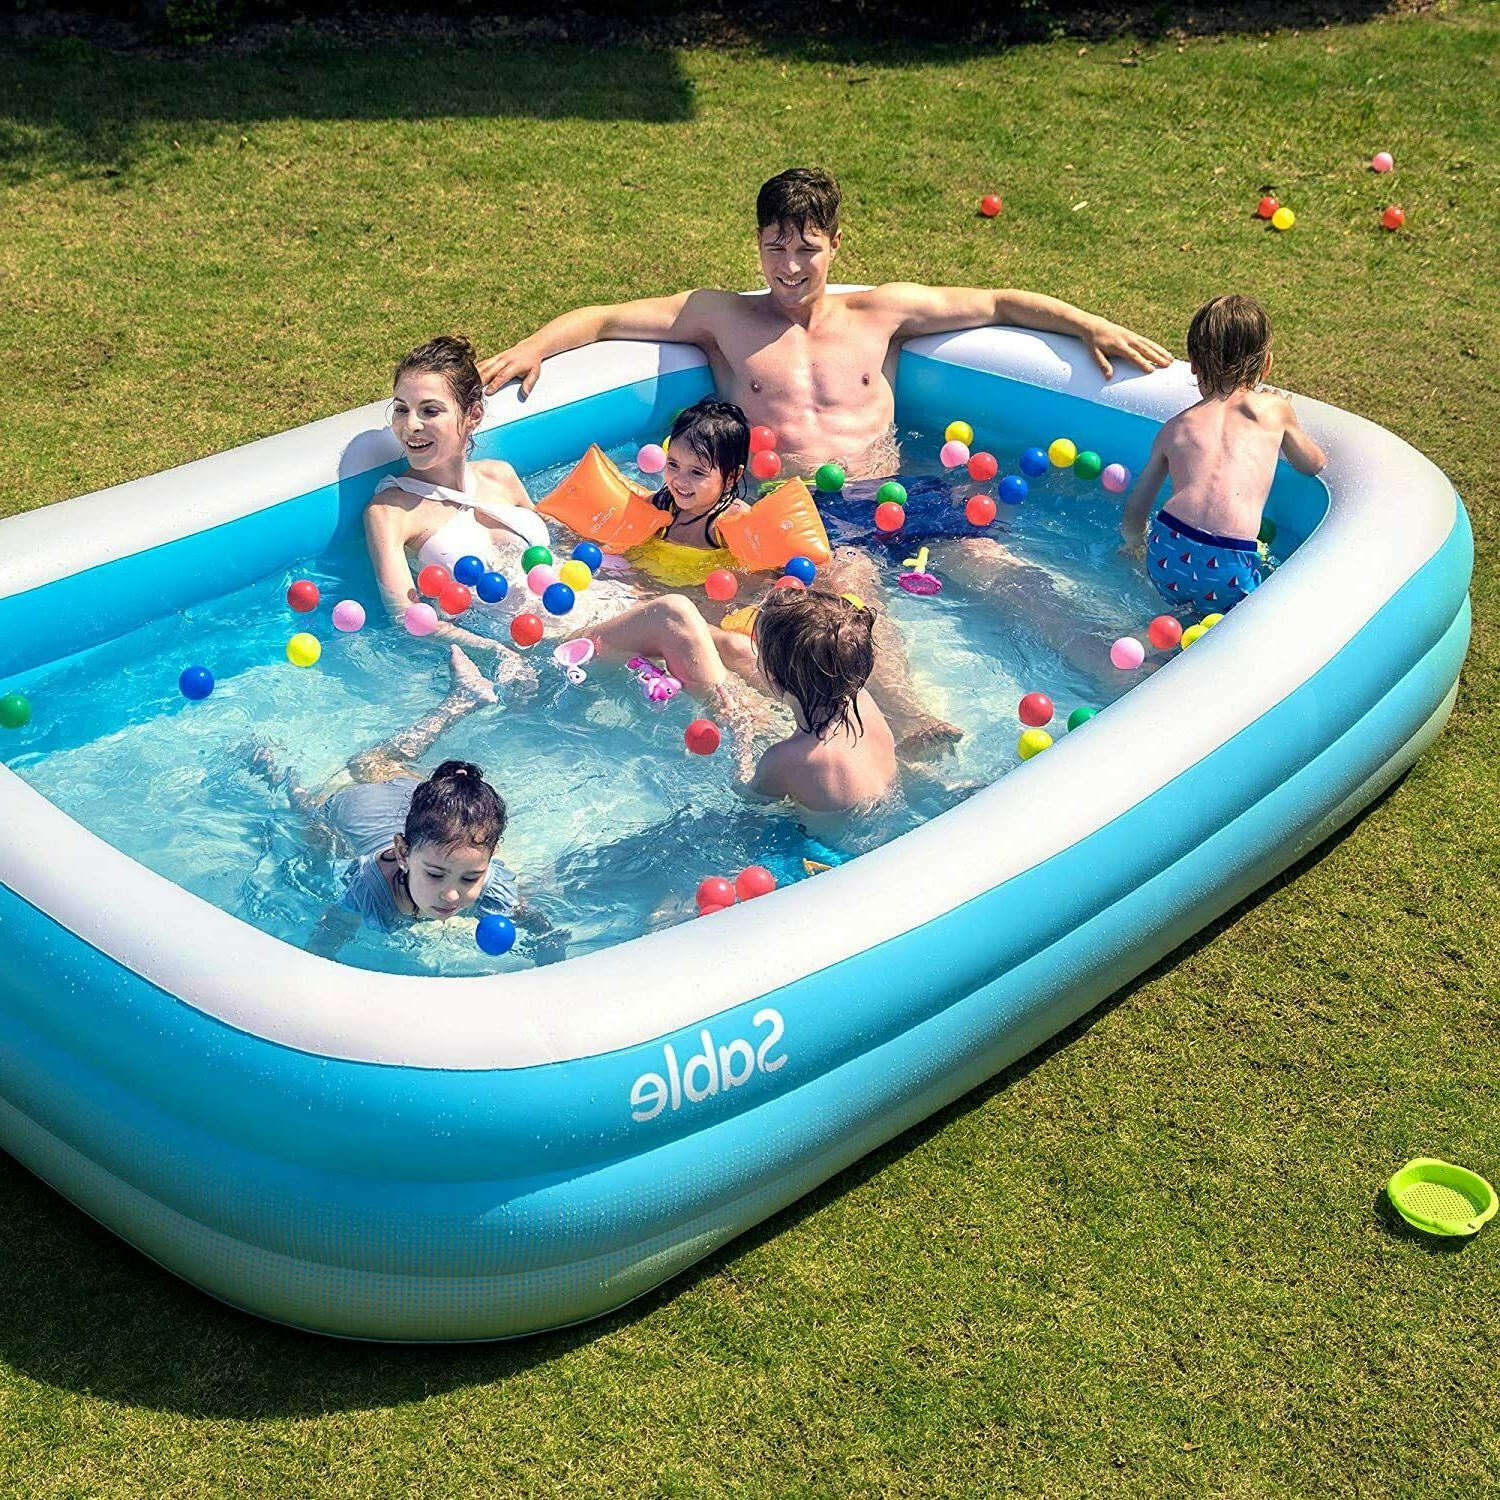 Inflatable Blow Up Family Full-Sized Pool Kids,Toddlers,